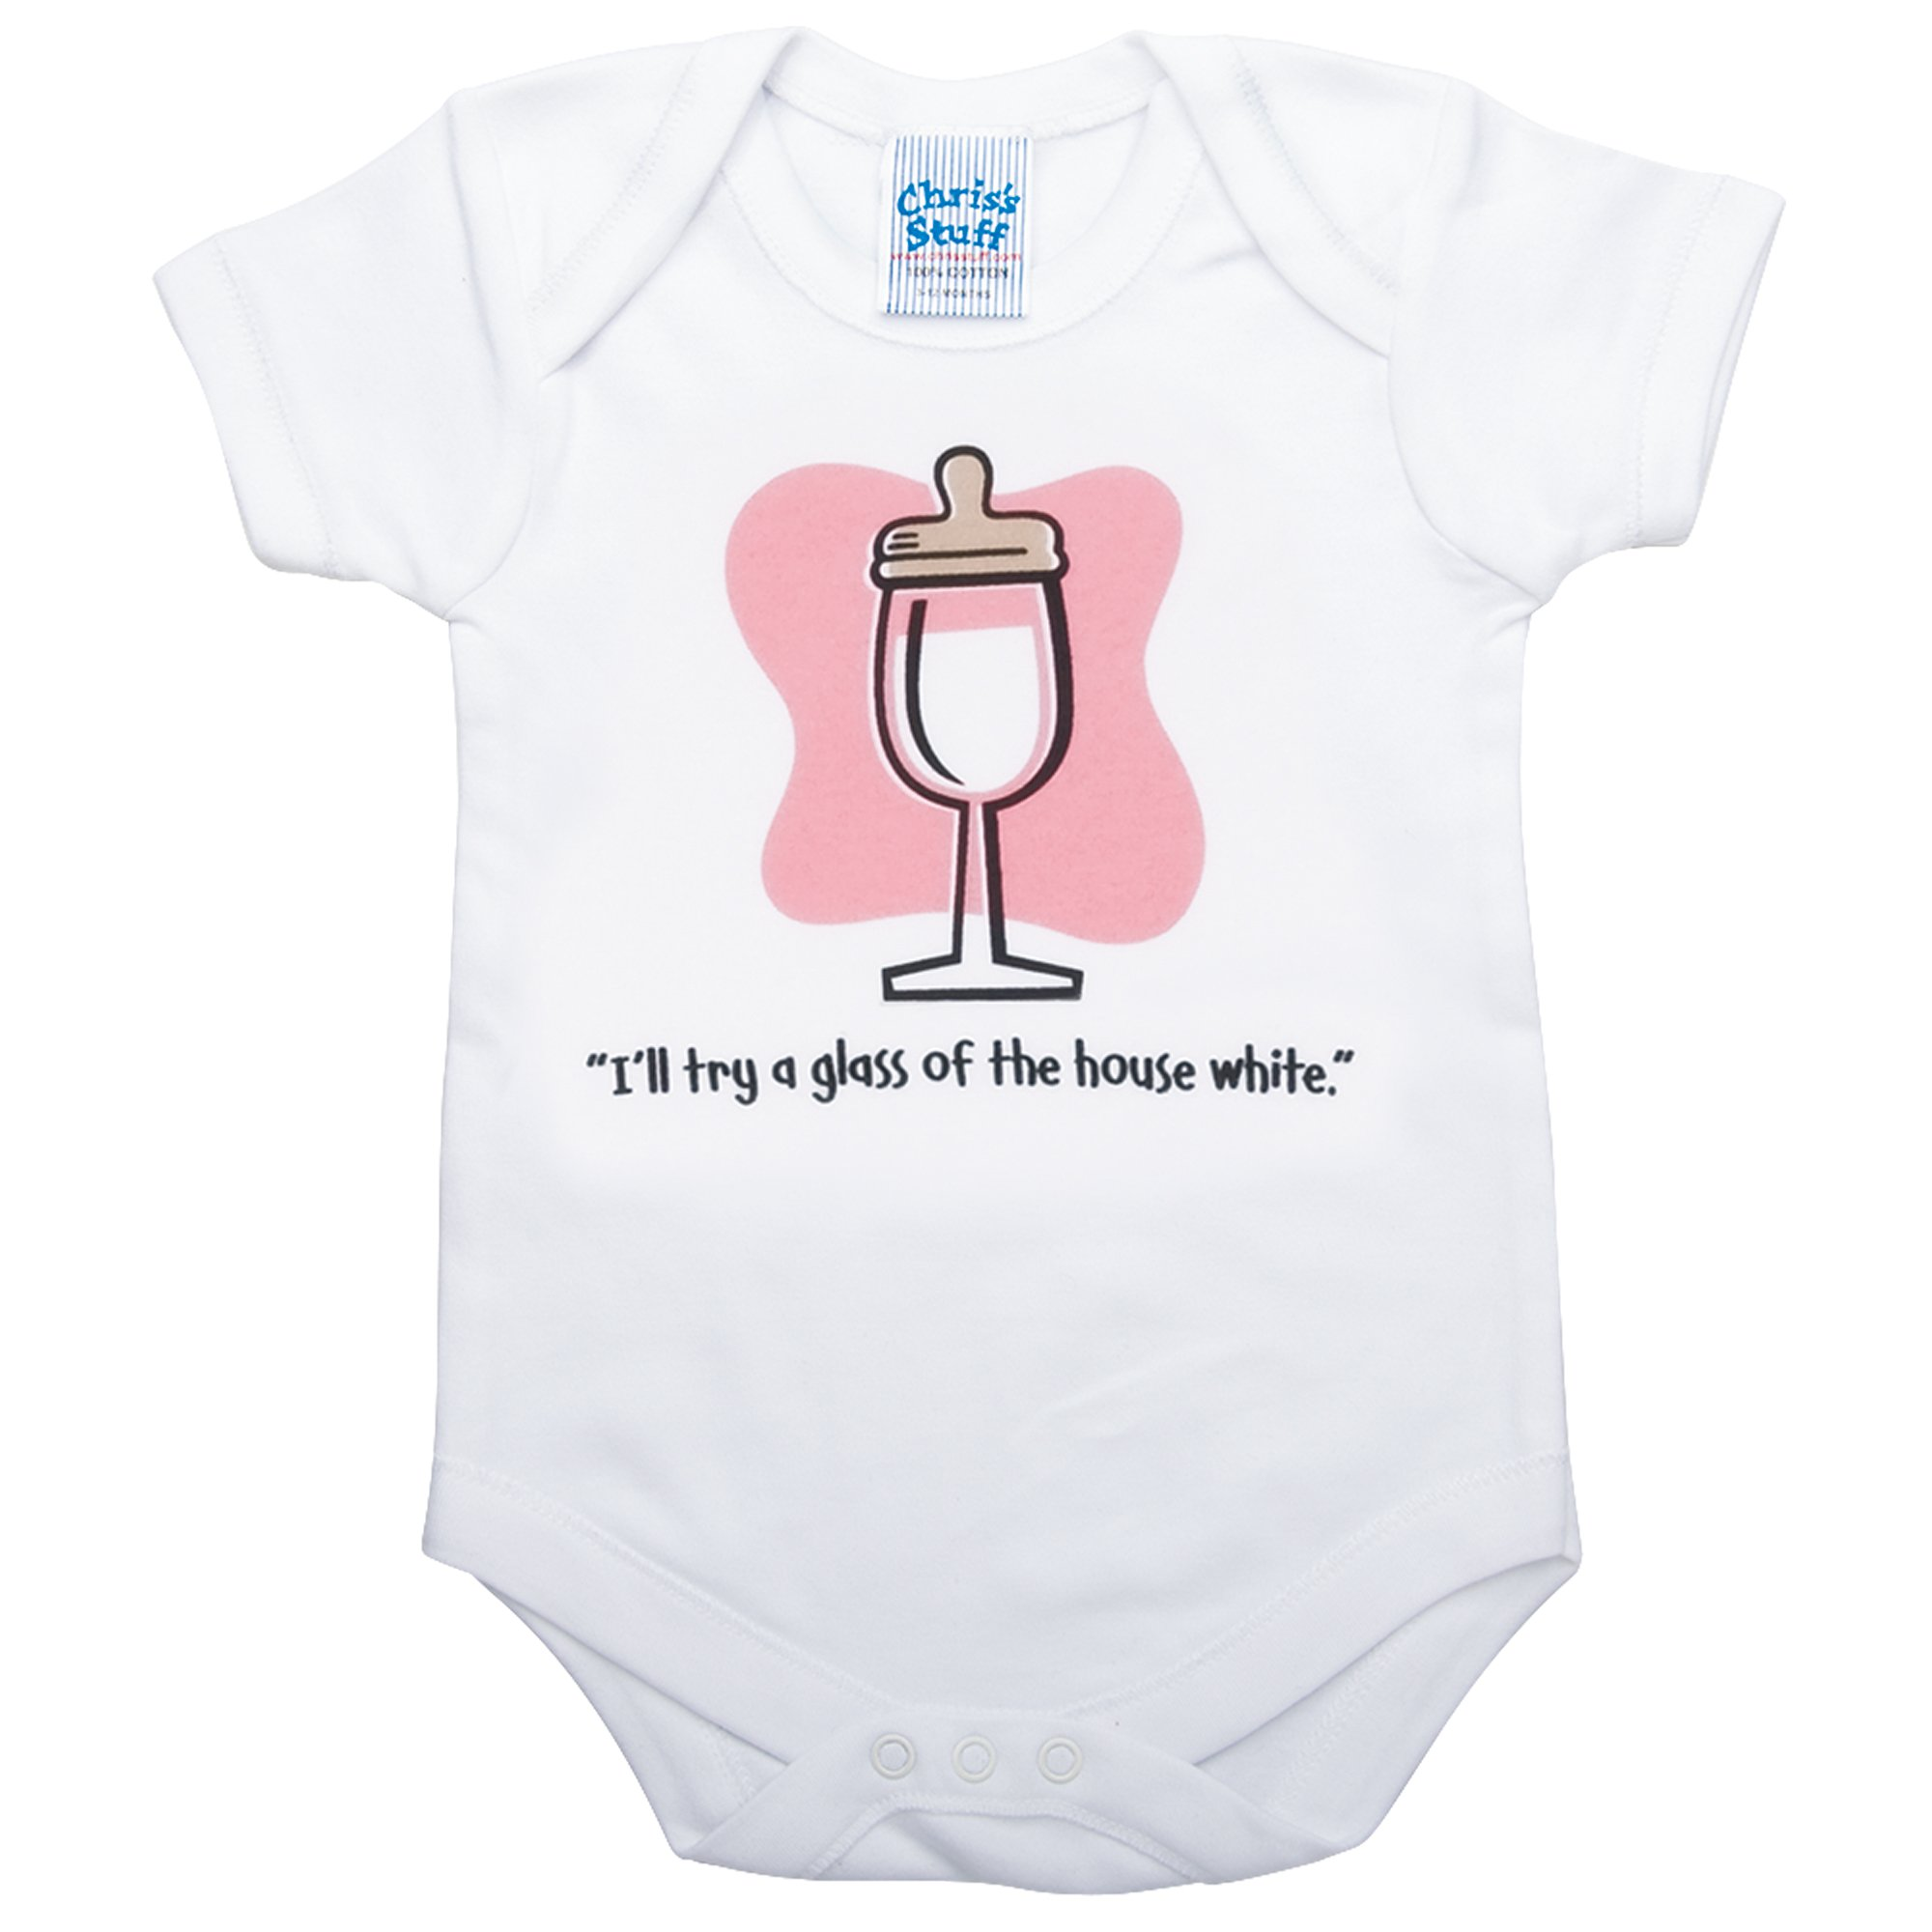 I'll Try a Glass Of The House White (Pink Background, 3-12 Months by Chris's Stuff